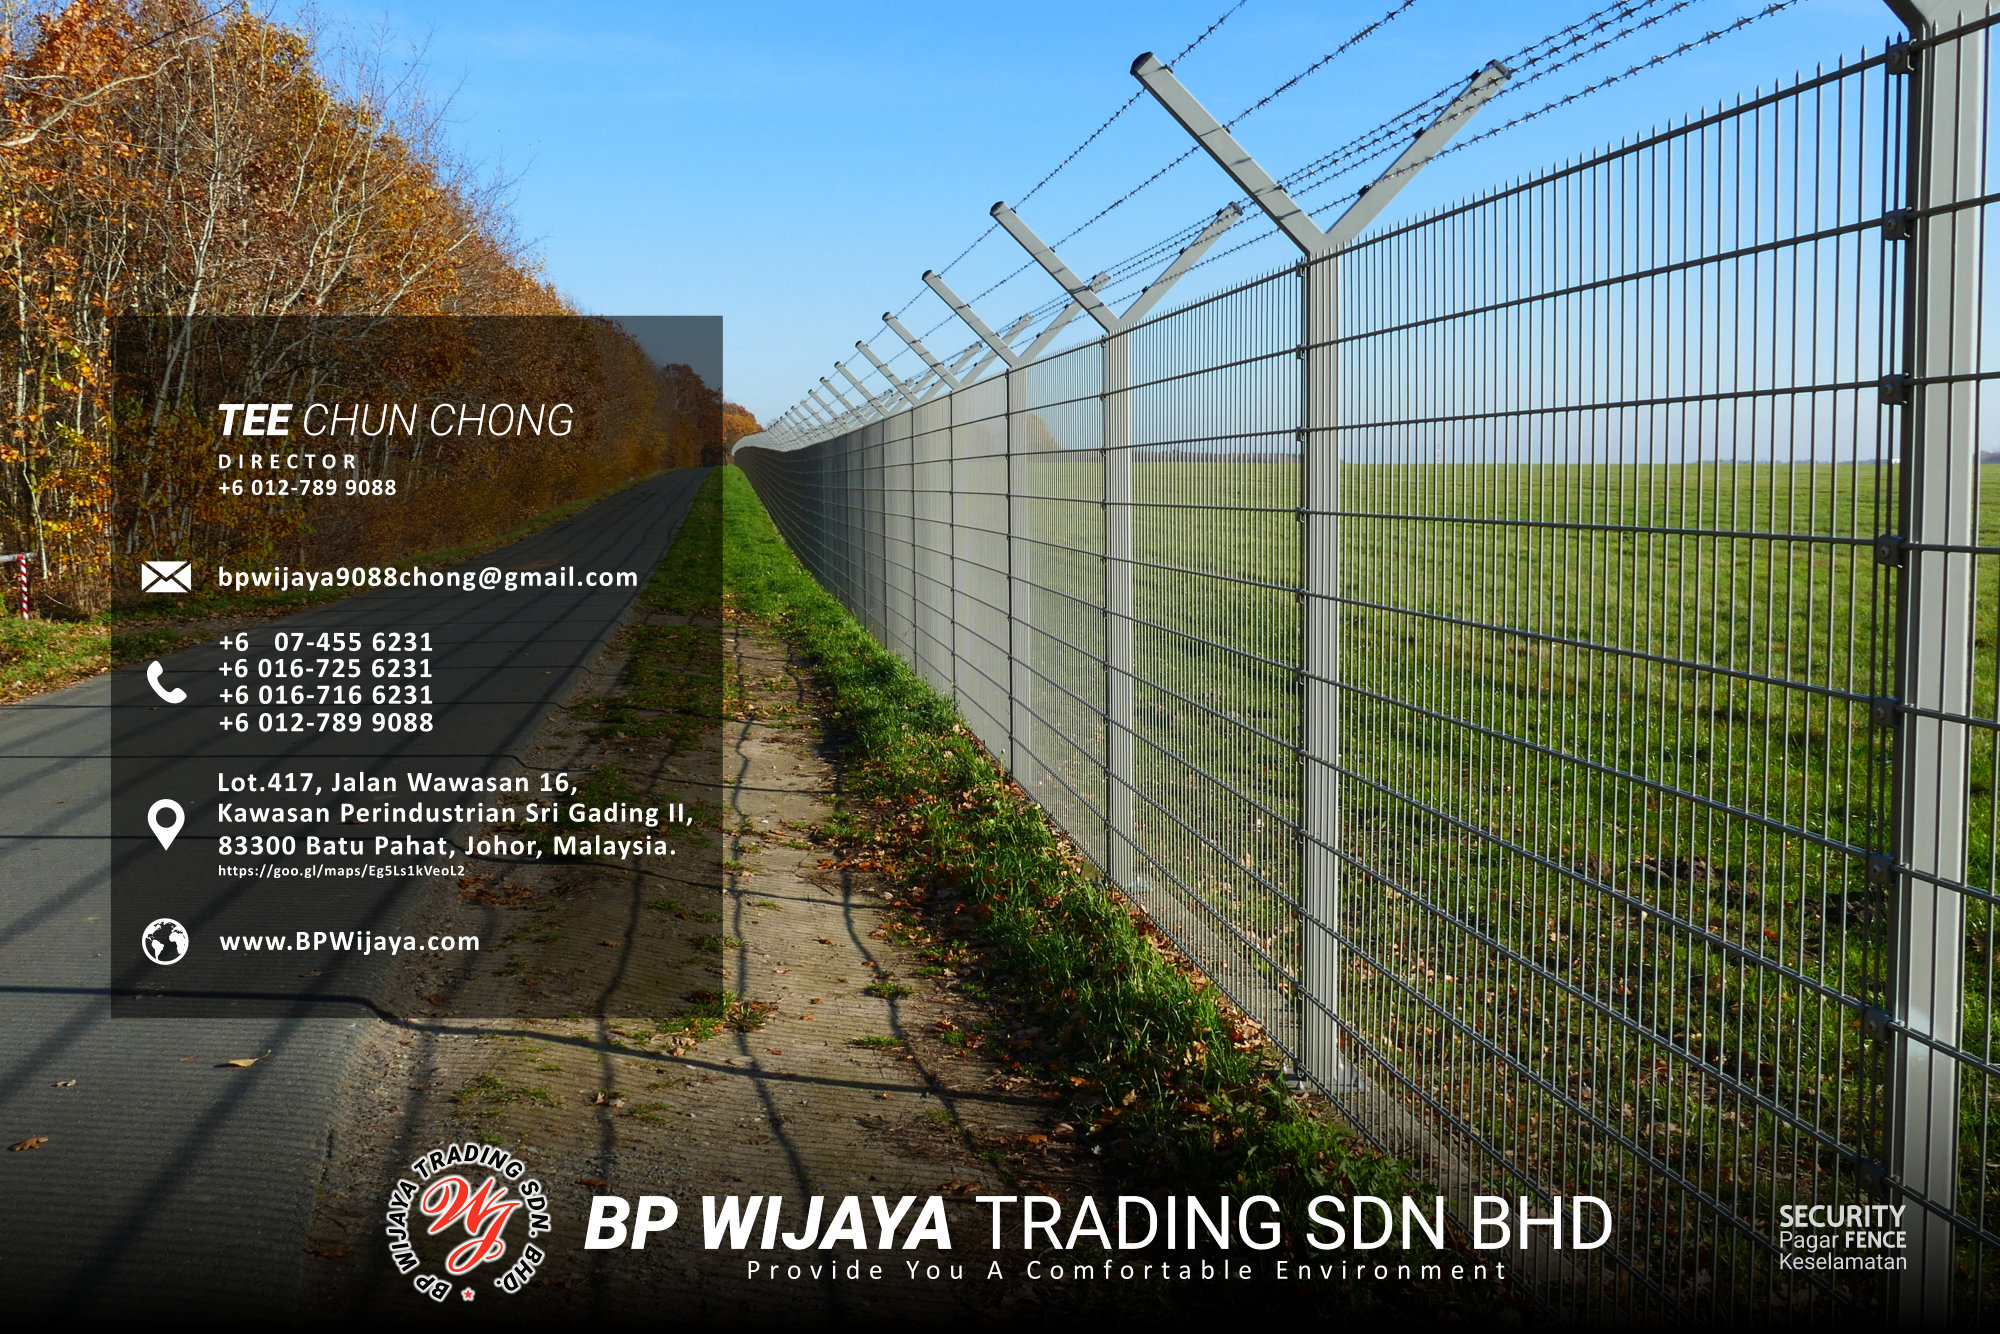 Kuala Lumpur Security Fence Supply we are manufacturer of security fence BP Wijaya Trading Sdn Bhd Safety Fence Building Materials for Housing Construction factory fence house beauty fence A03-002